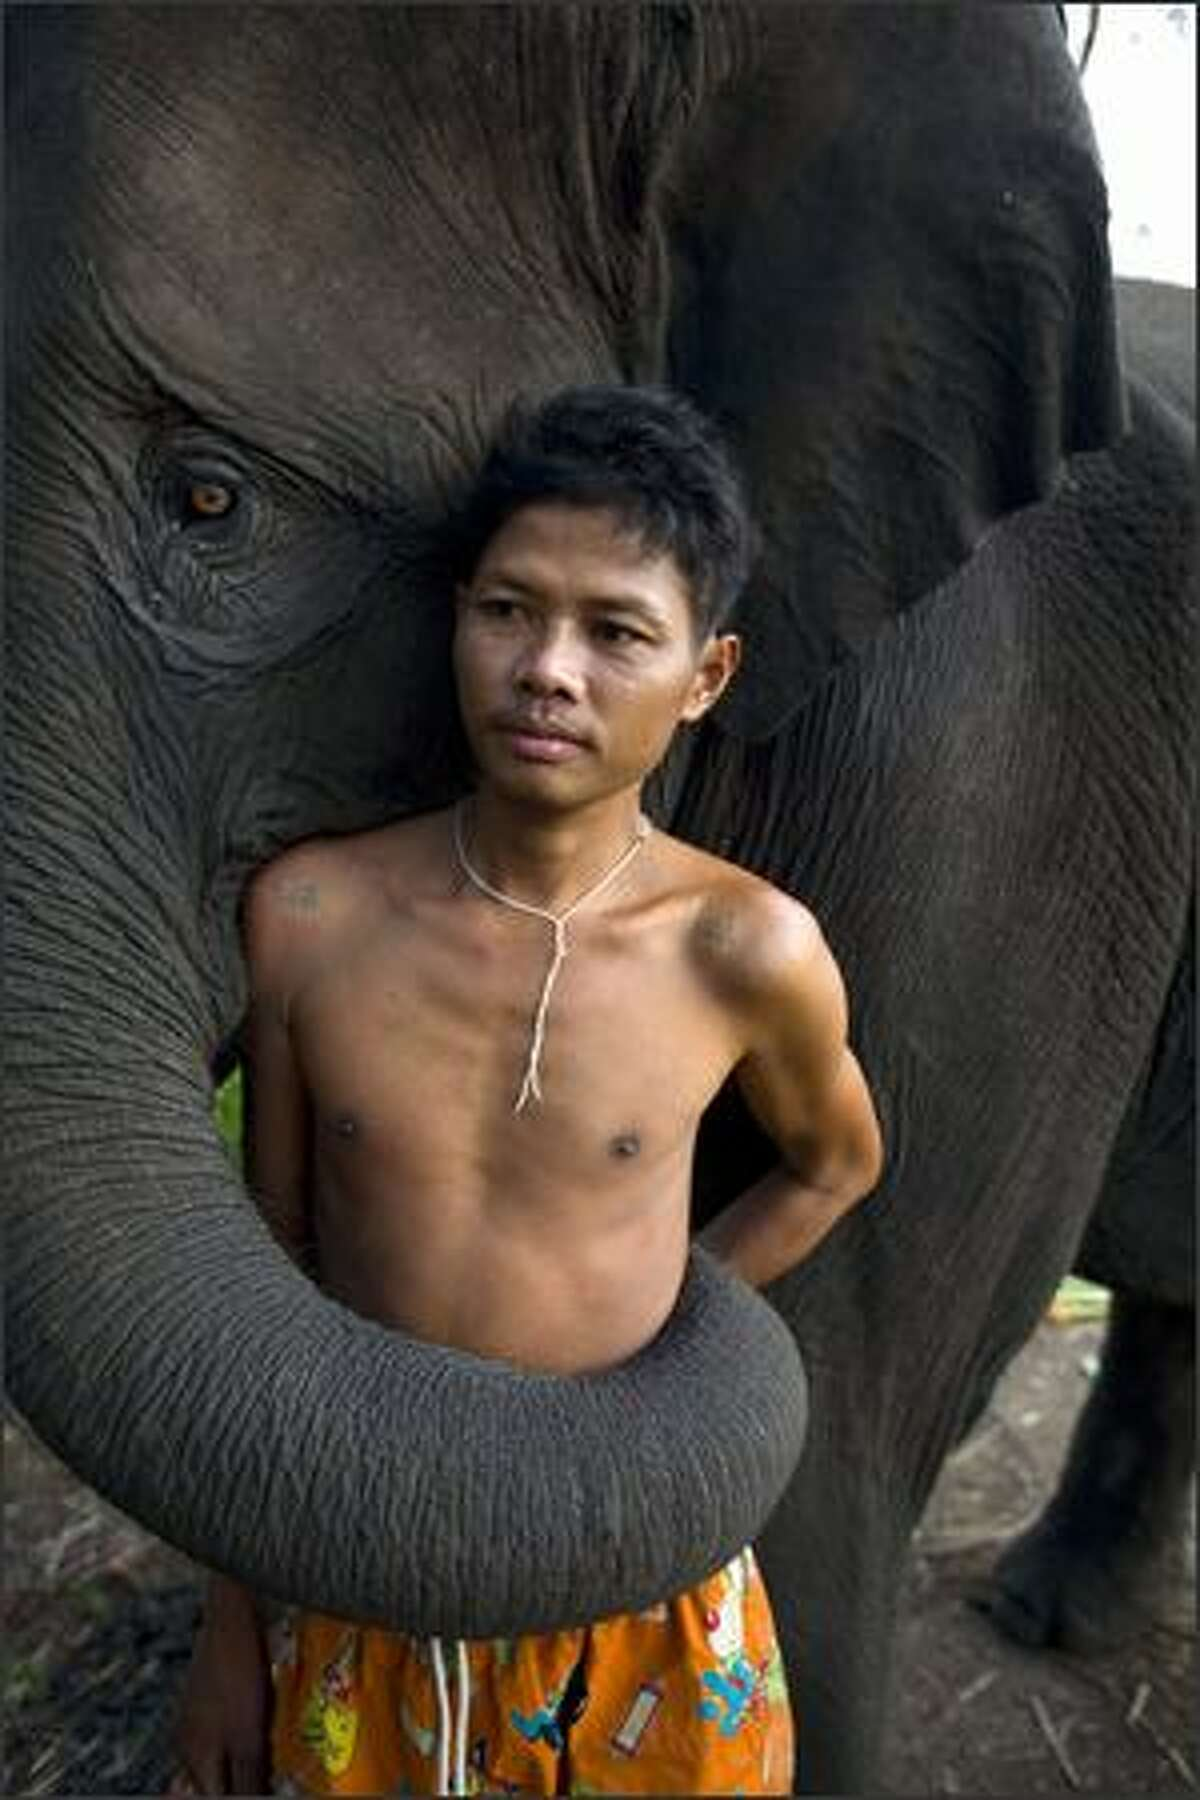 Sangworn, a mahout (elephant driver), stands with his elephant, Bussaba, 13 years old, at his temporary camp in Bangkok, Thailand. While the elephant is a symbol of Thailand, it is a fairly common site to see the unemployed and homeless animals roaming the city streets begging for food. The tame elephants dodge the traffic as their mahouts (elephant drivers) sell sugar cane by the bag to tourists who then feed them. Mahouts say that they have little choice but to bring their elephants to cities like Bangkok and Chiang Mai. Elephants are trained to paint, play musical instruments, and even kick soccer balls.